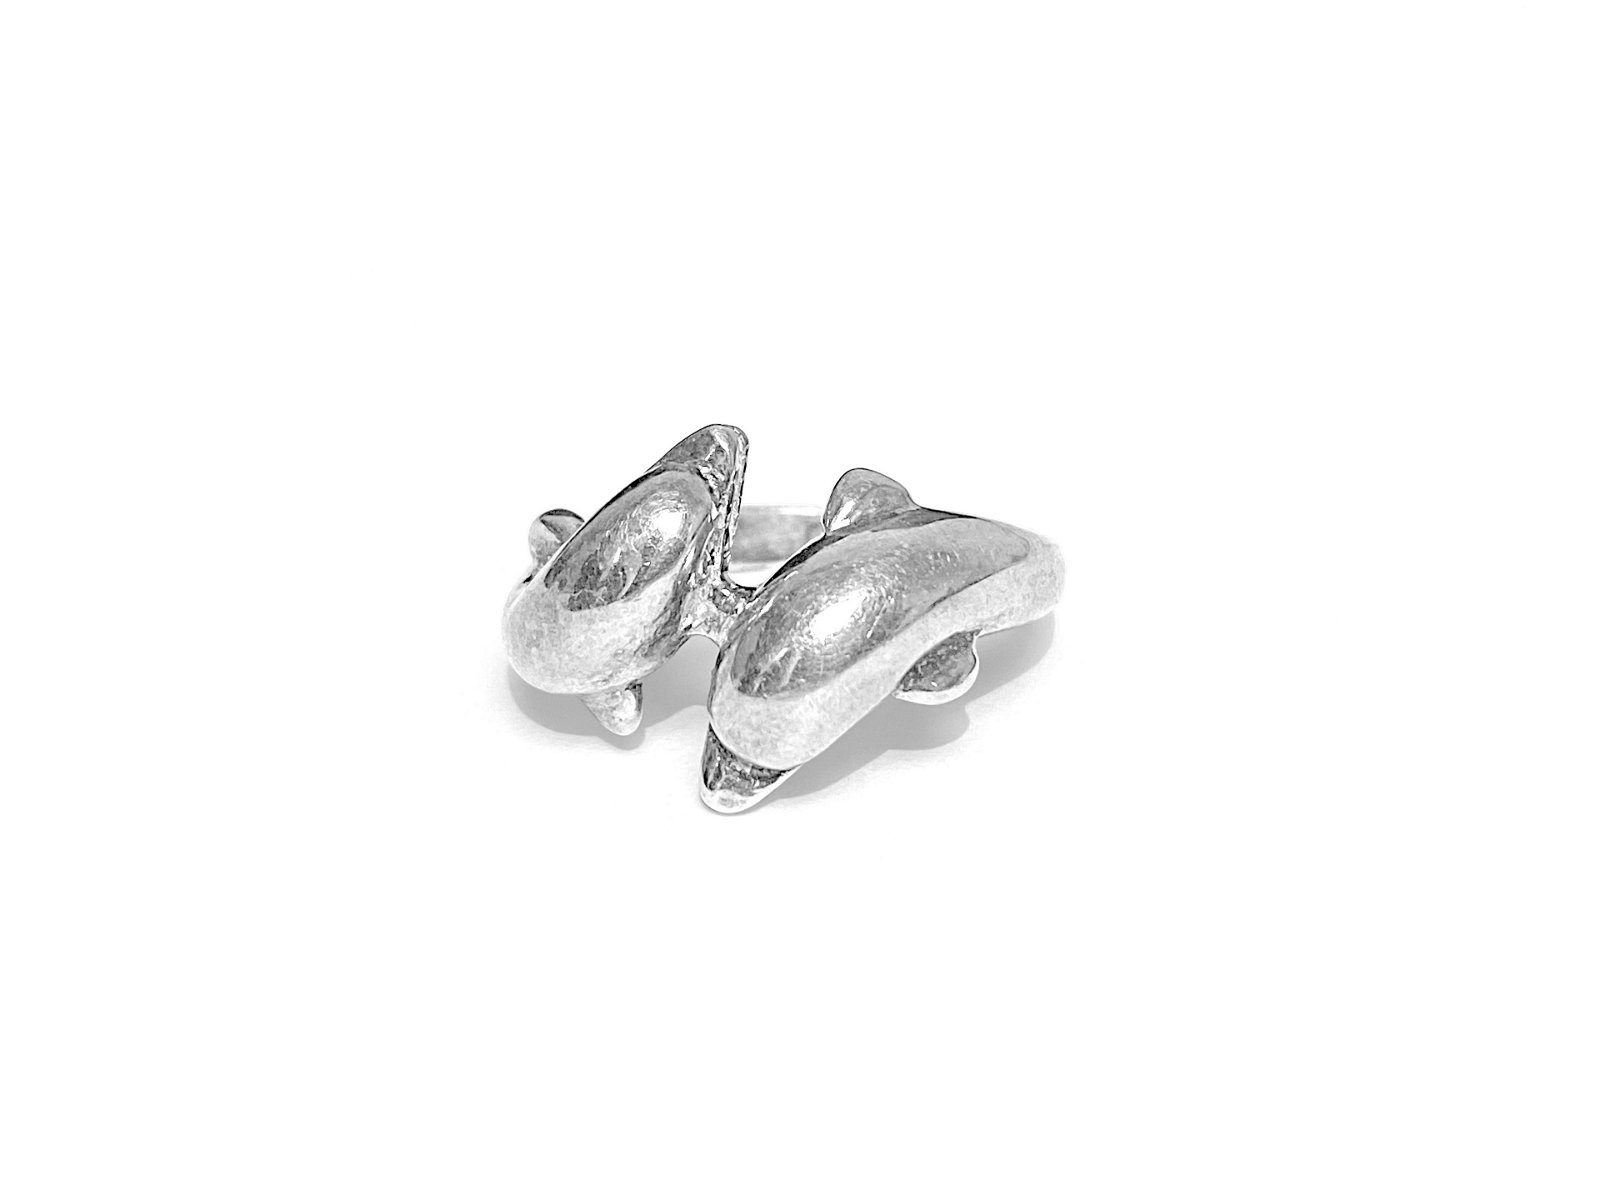 Vintage Dolphin Motif Ladies Sterling Silver Ring